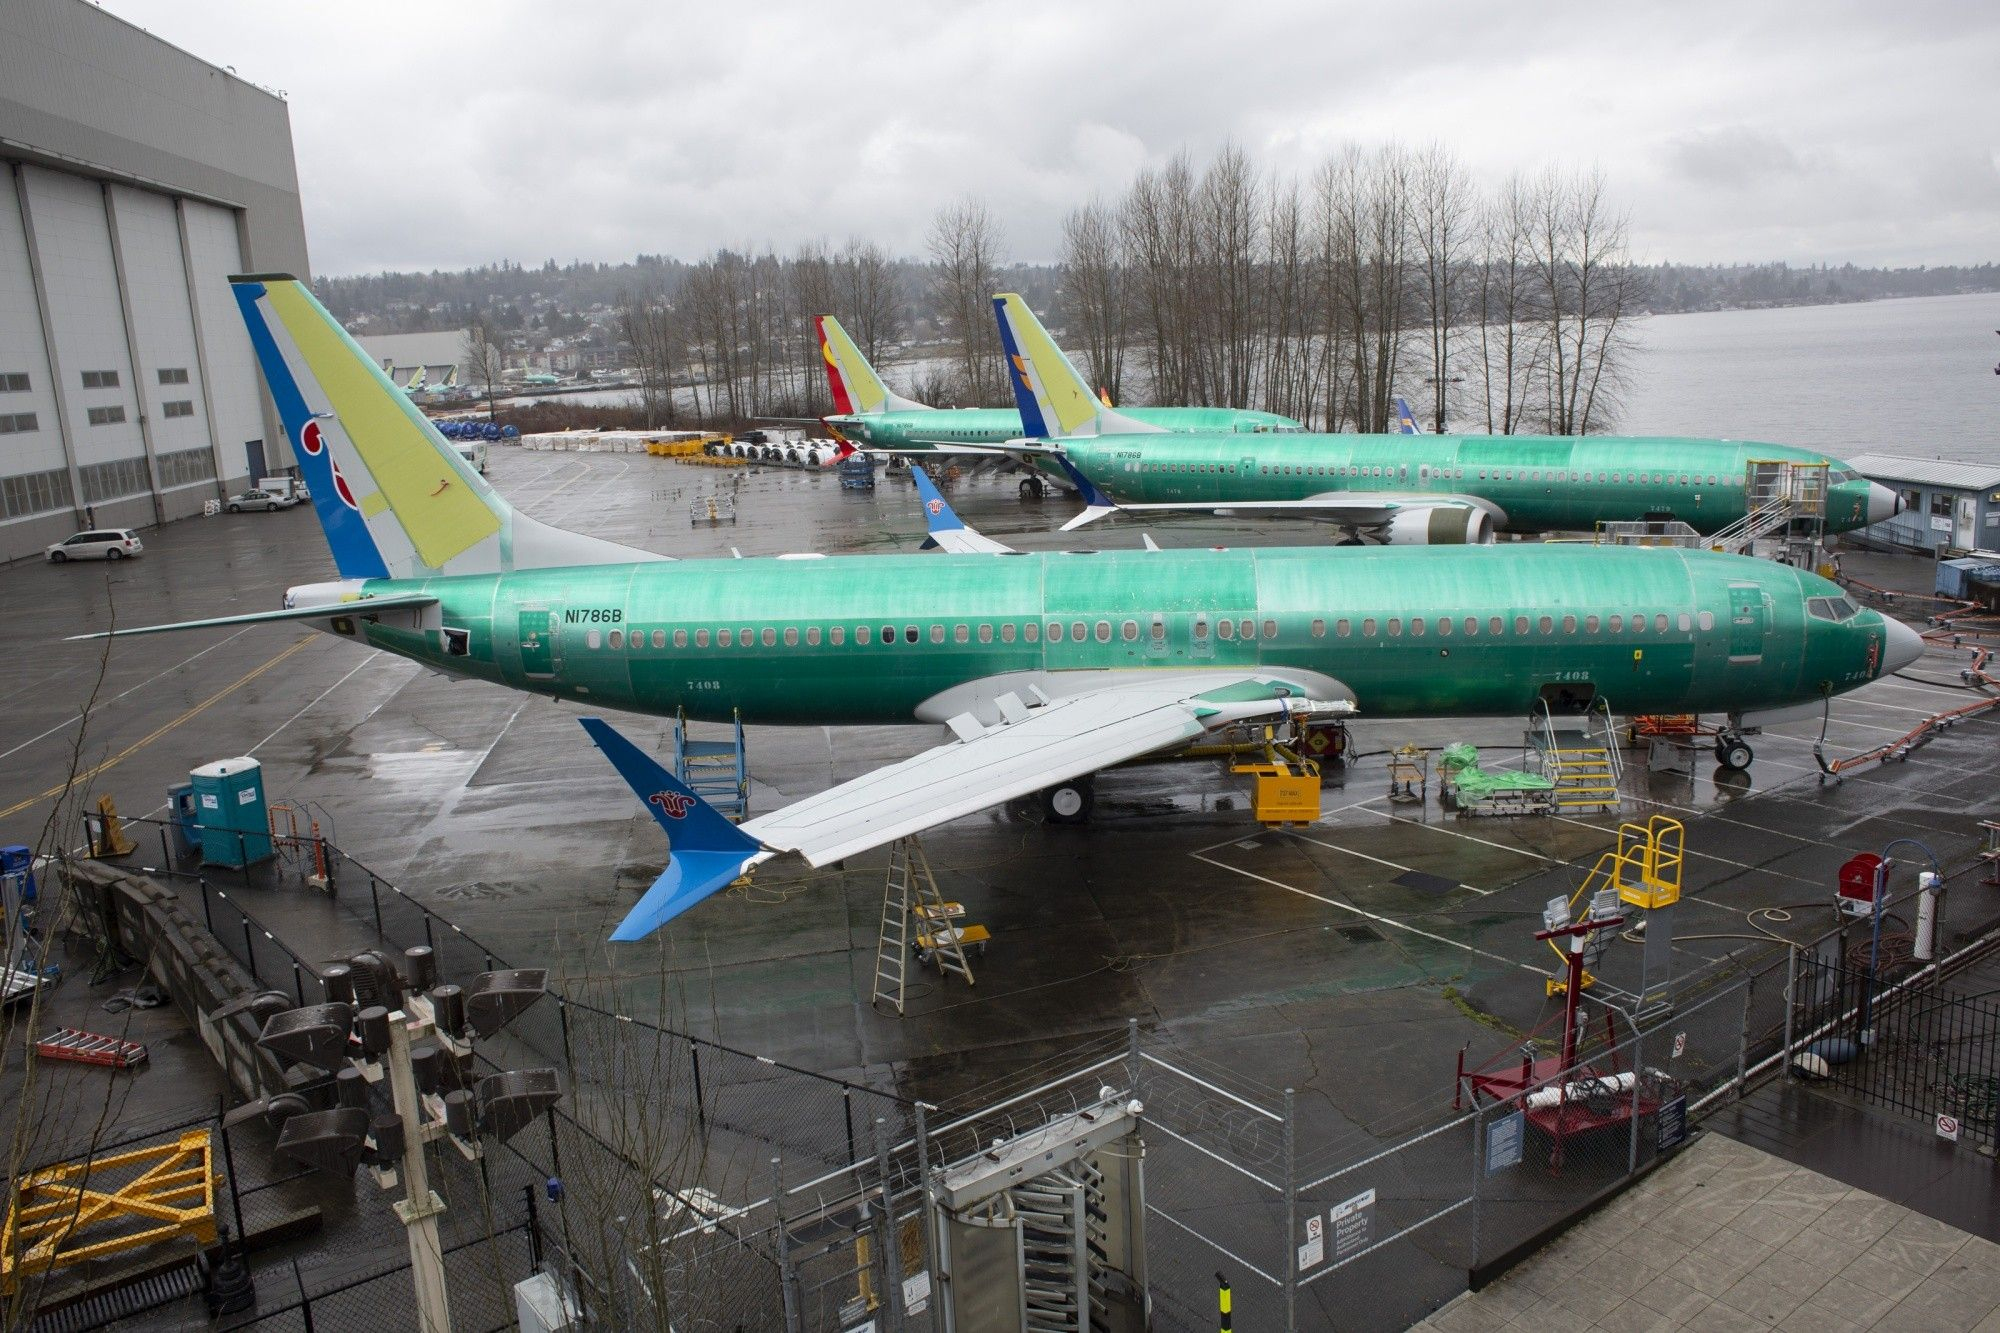 Boeing Corp. 737 Aircraft Production Plant Amid Global Uproar